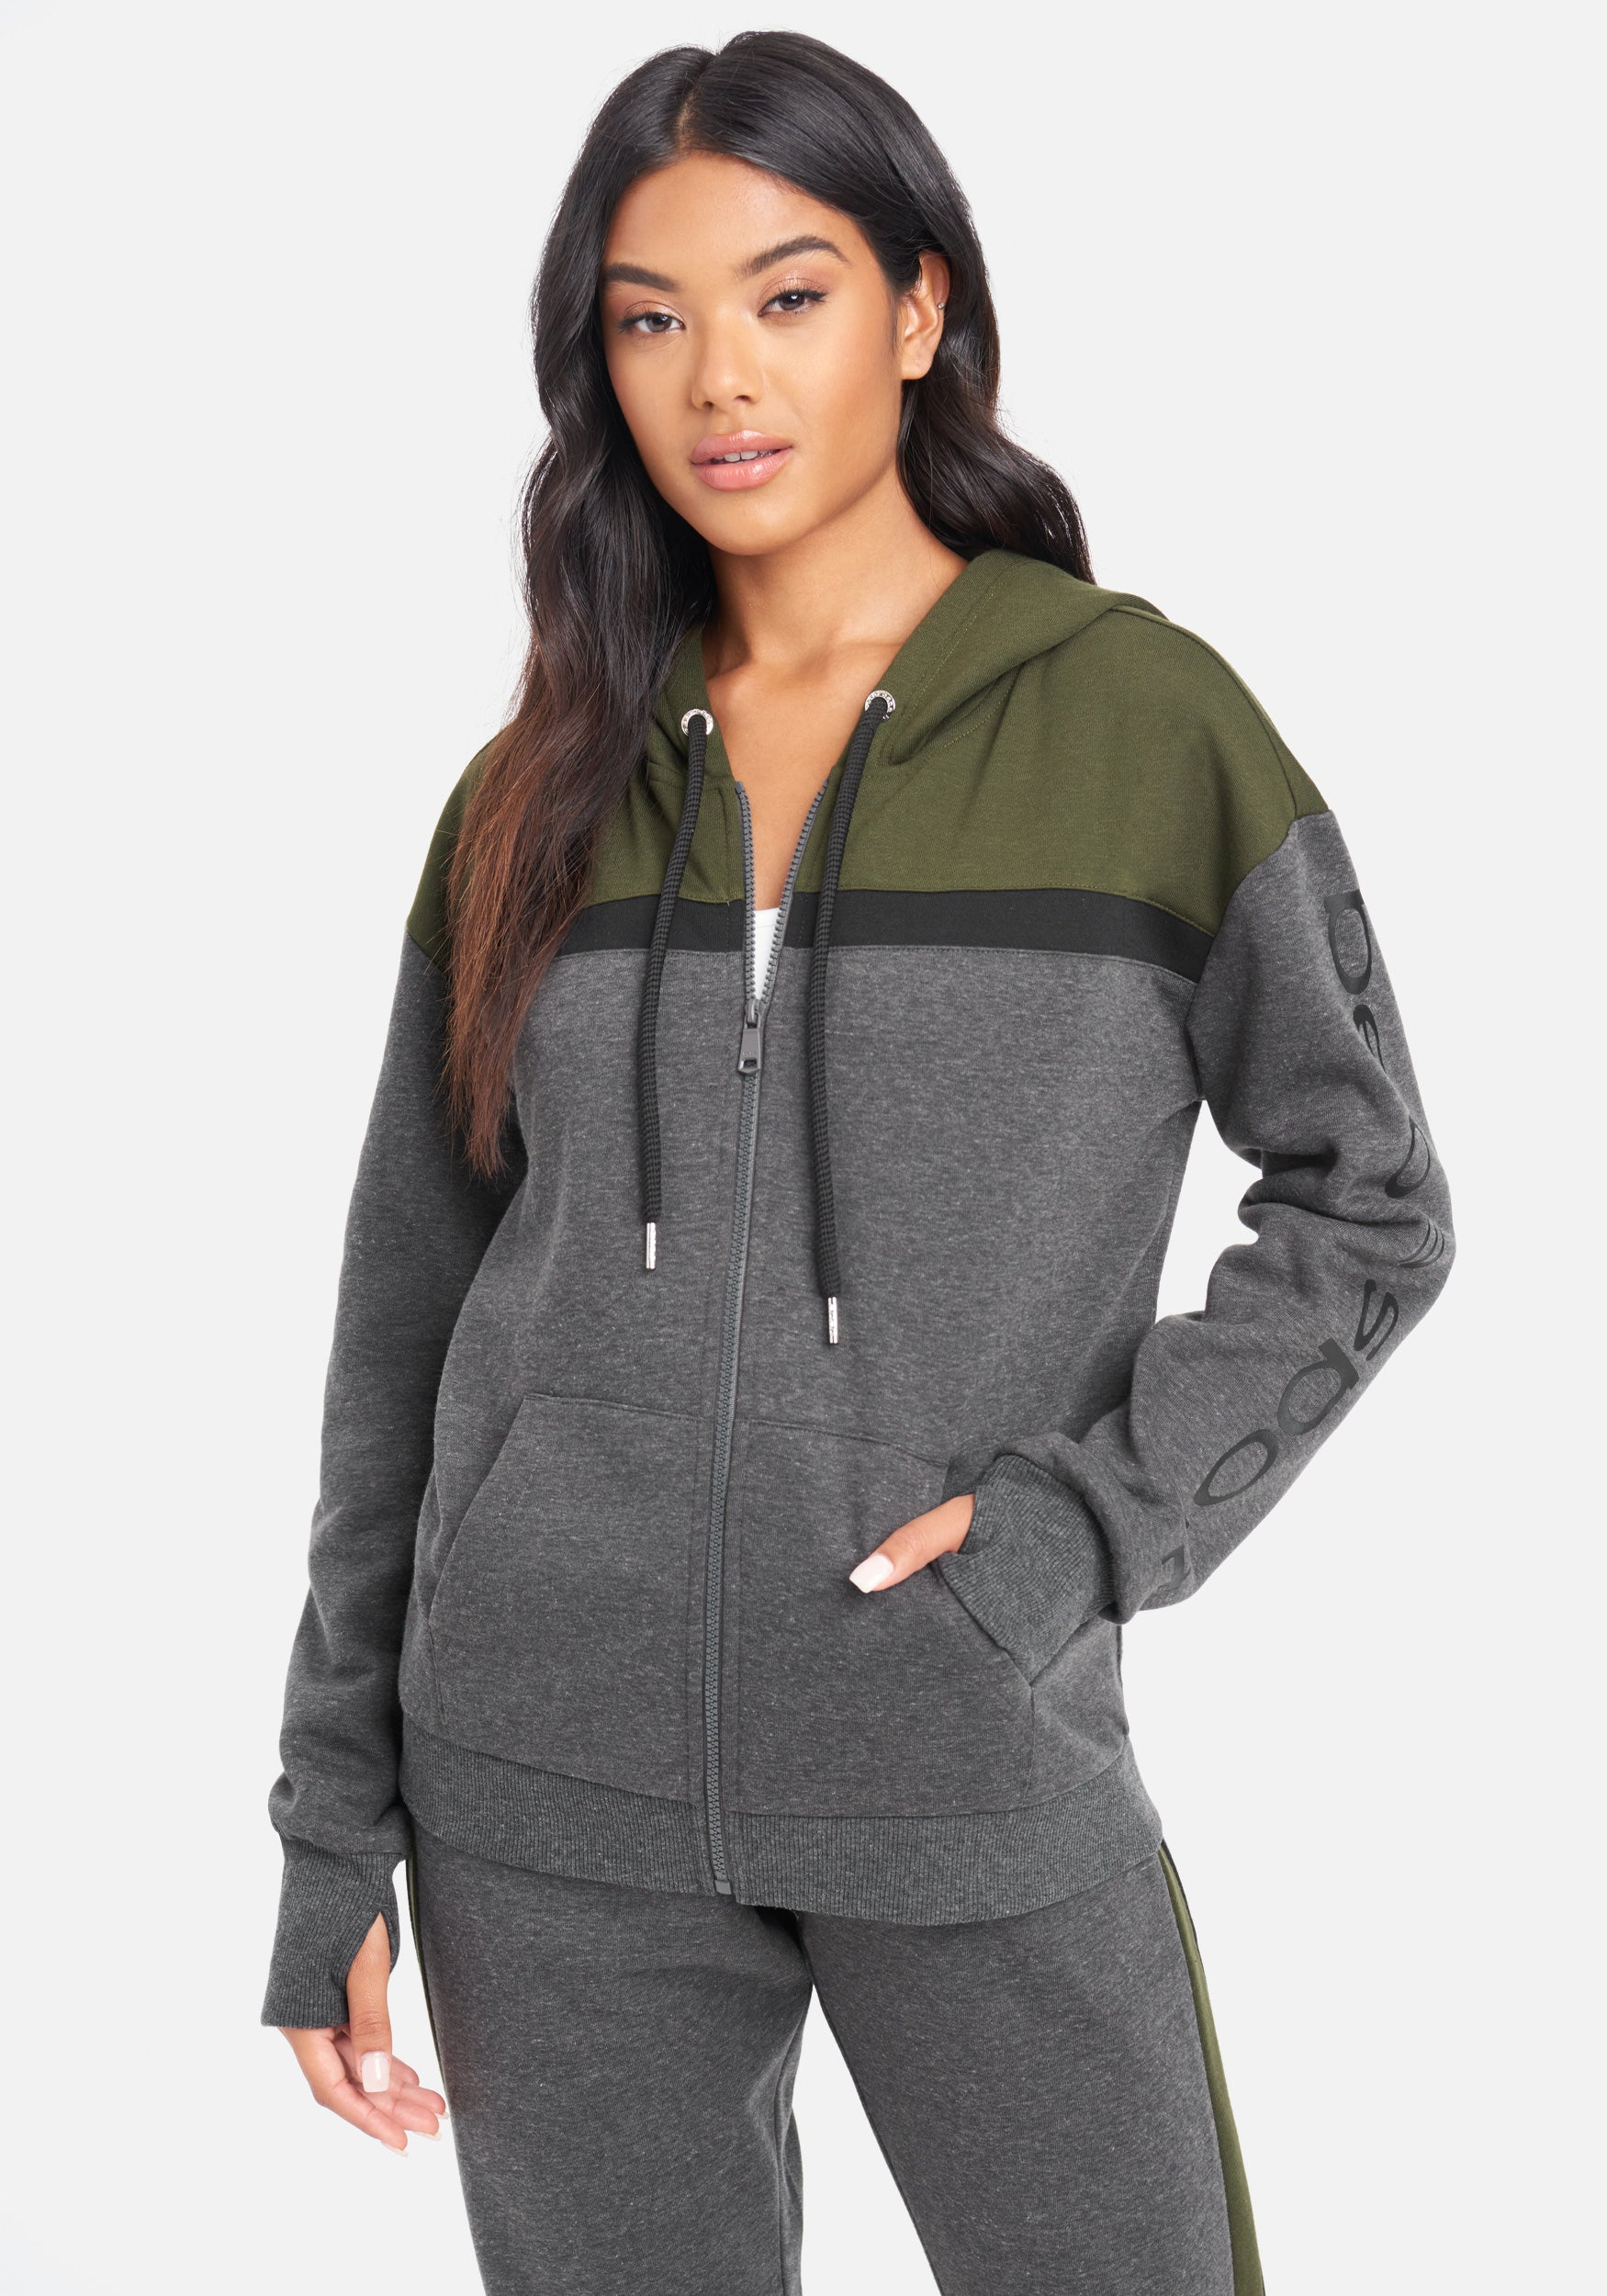 Image of Women's Bebe Sport Color Stripe Jacket, Size Small in Charcoal Grey